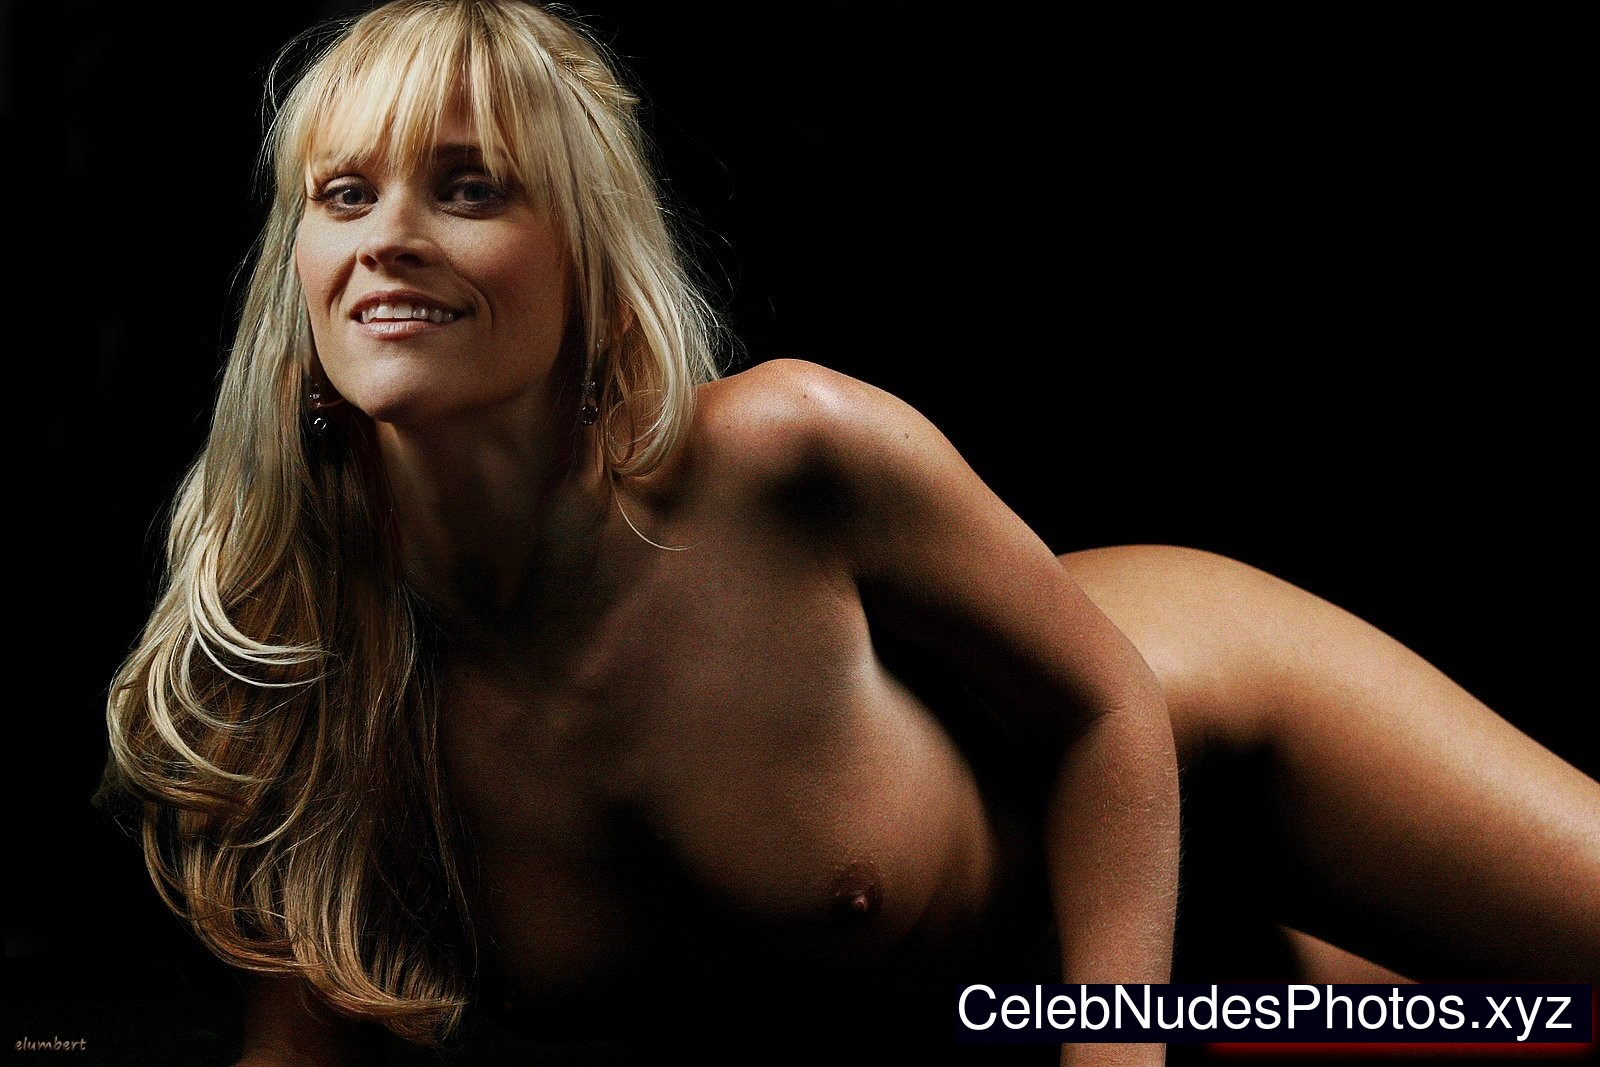 image Rare nudes of reese witherspoon